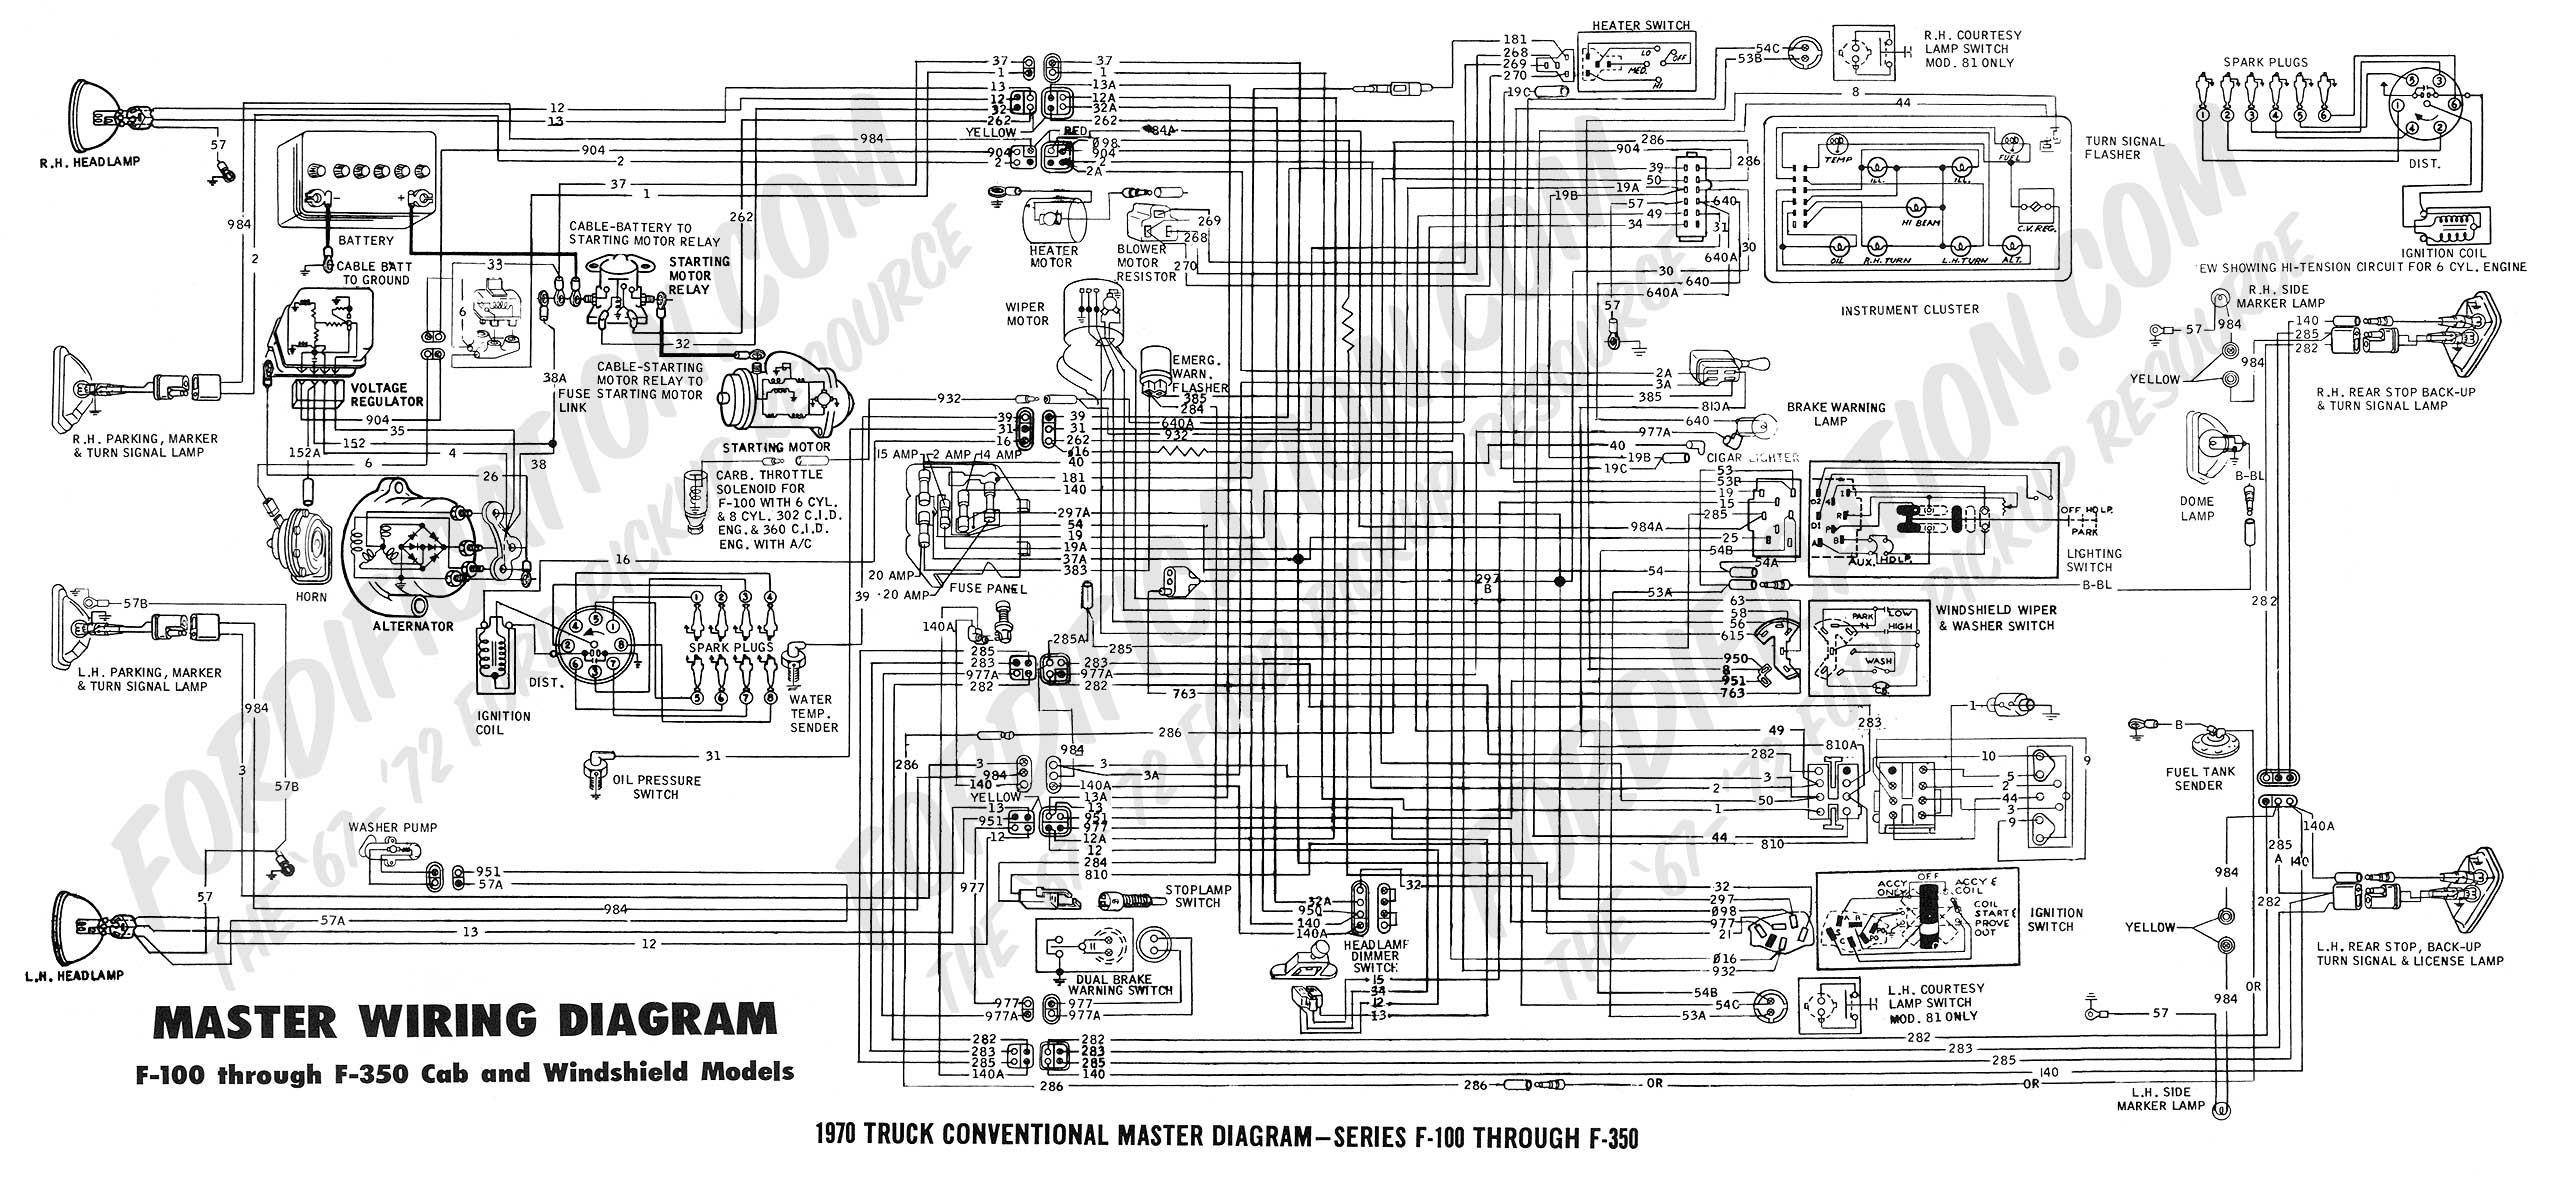 Truck Wiring Diagram Truck Wiring Diagram - Wiring Diagrams